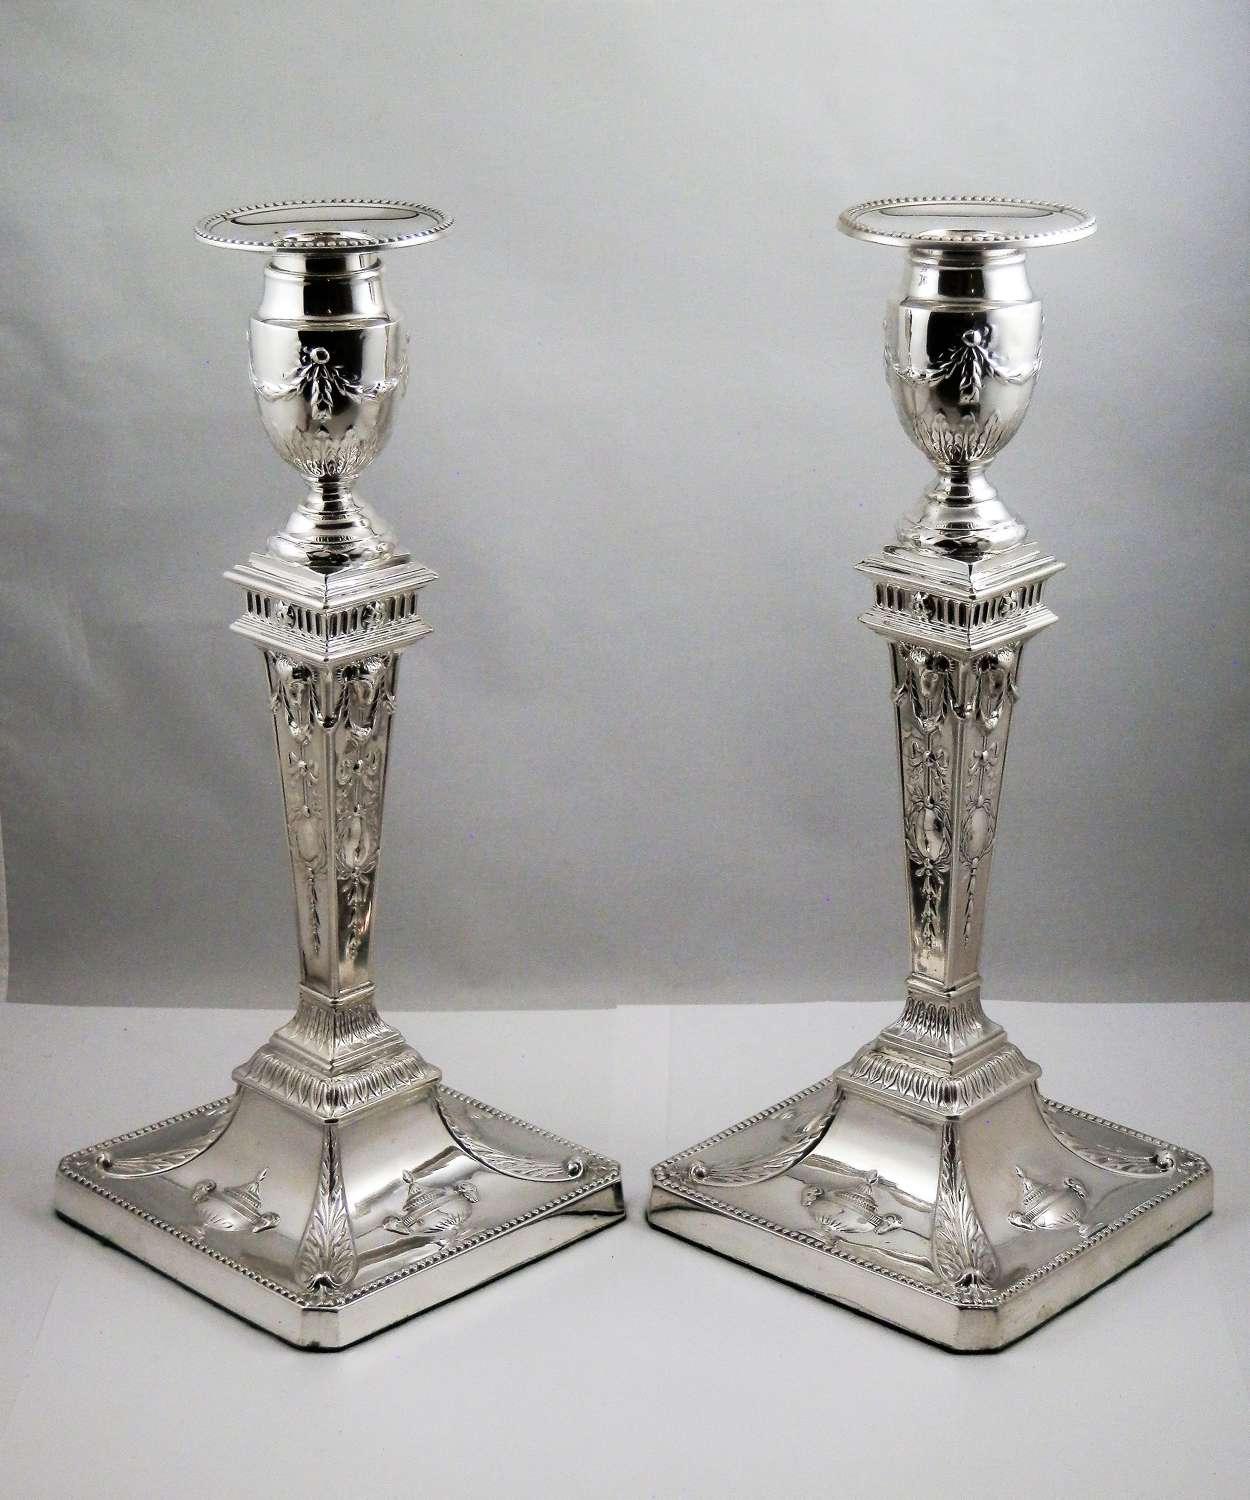 Victorian silver candle sticks, Sheffield 1899